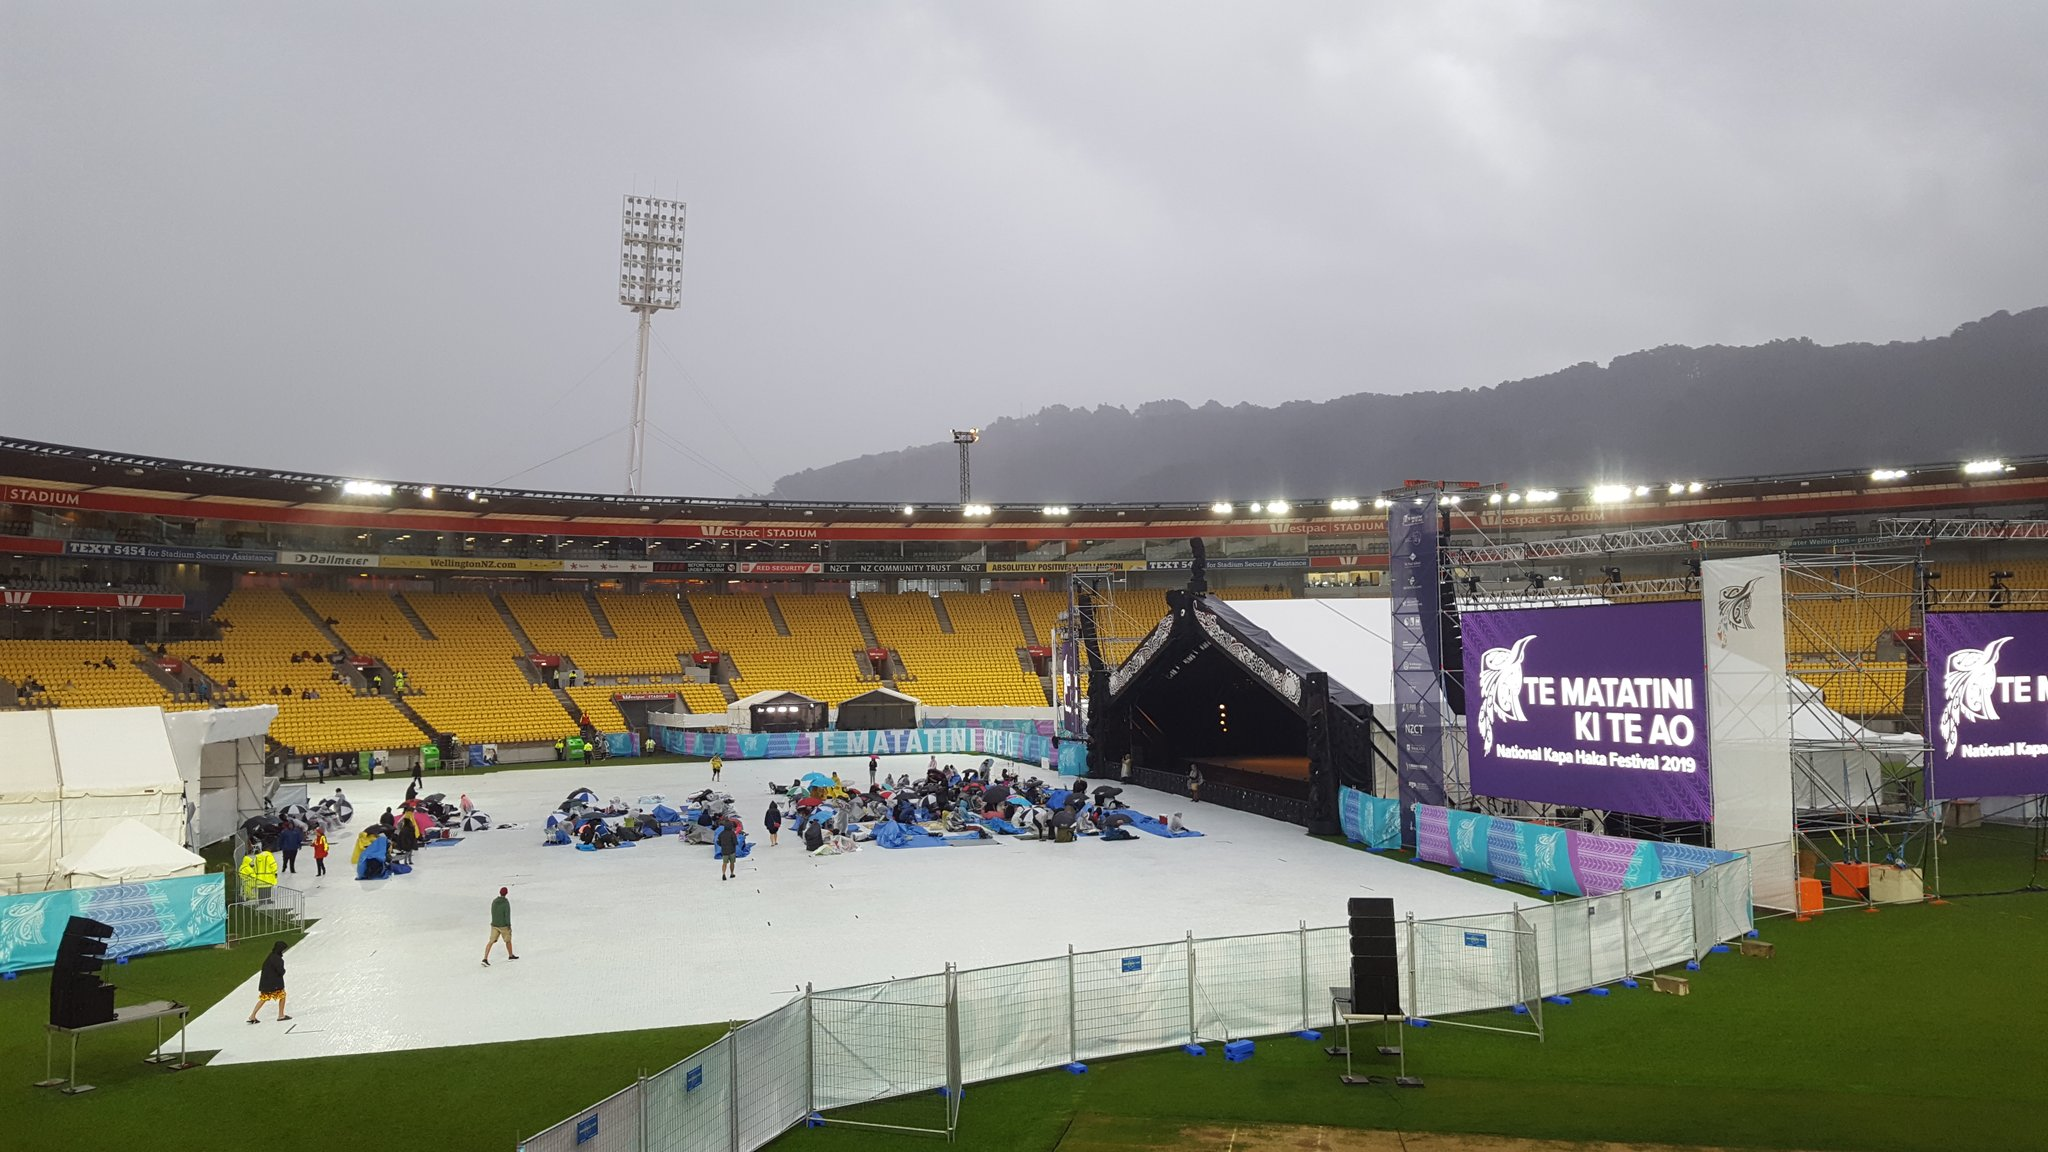 Despite the rain, hundreds of people have still arrived to secure the front seats. #matatini2019 https://t.co/A2P6K4IjnS